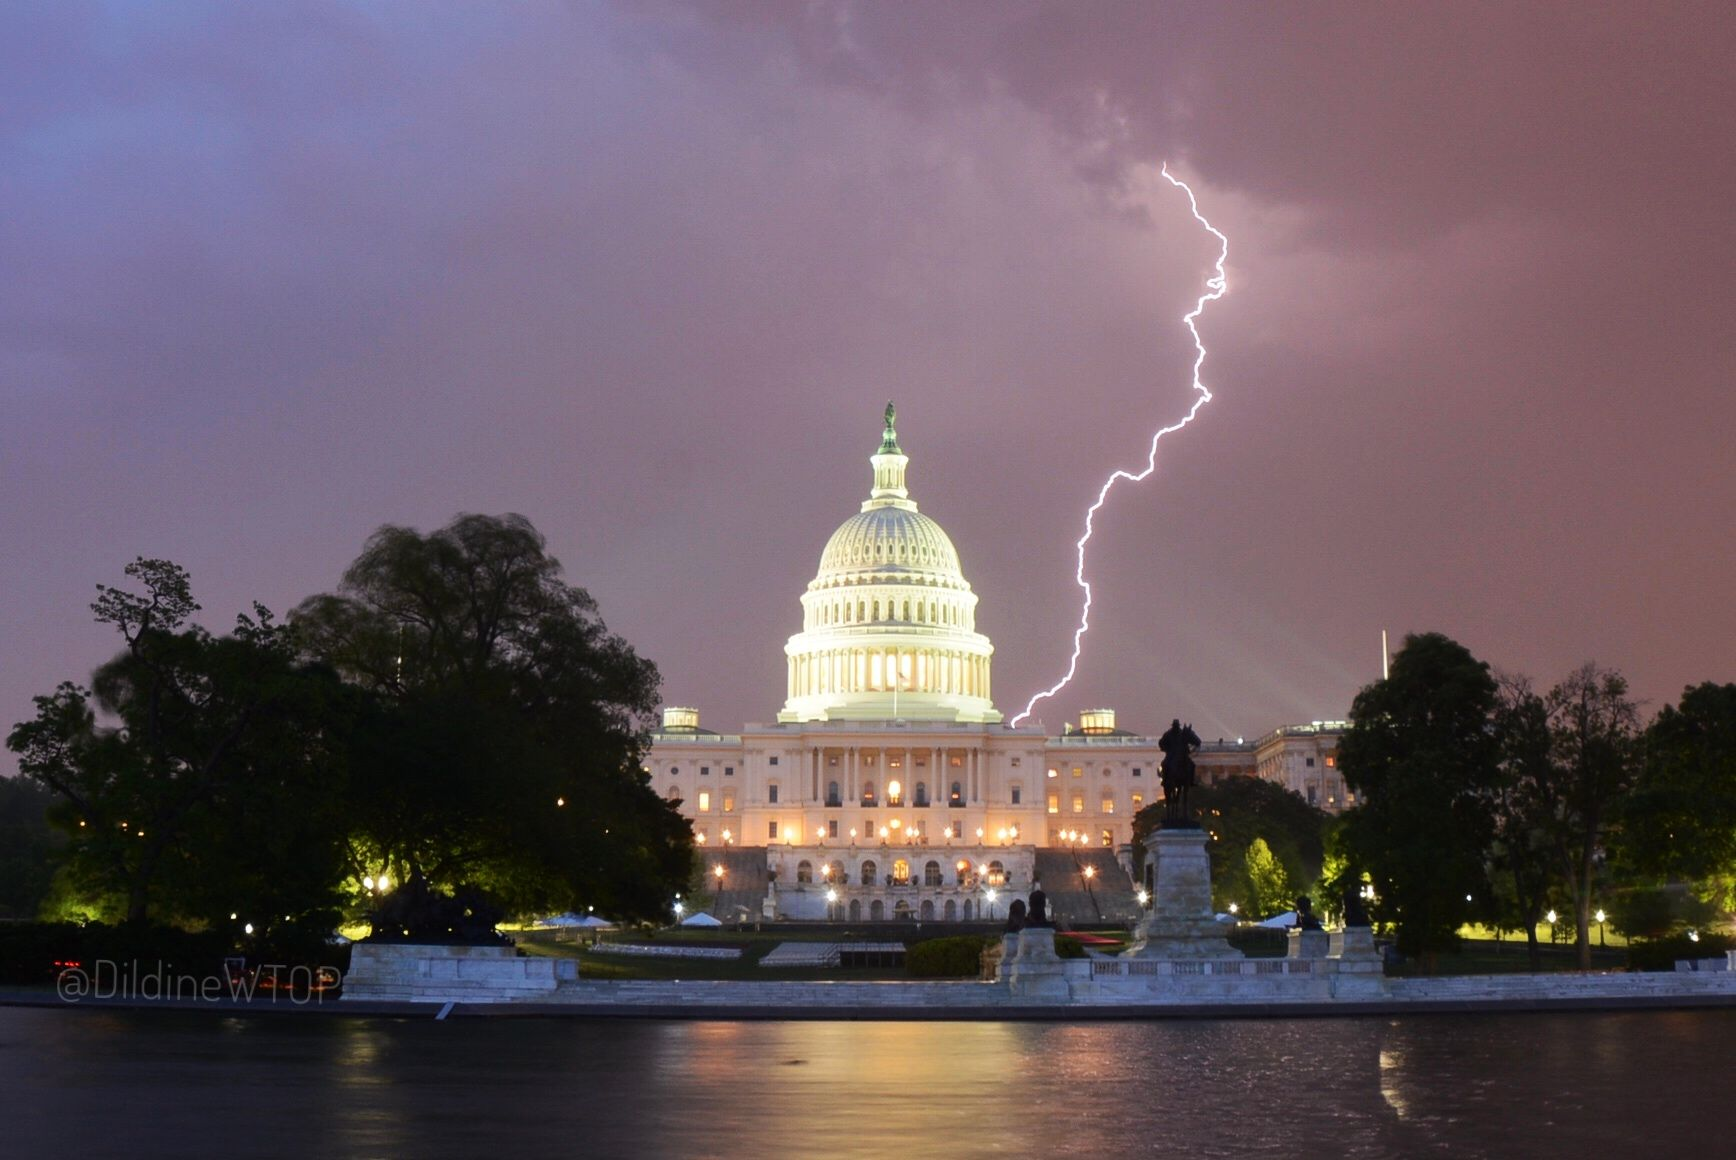 Lightning strikes near the U.S. Capitol on May 12, 2018. (WTOP/Dave Dildine)